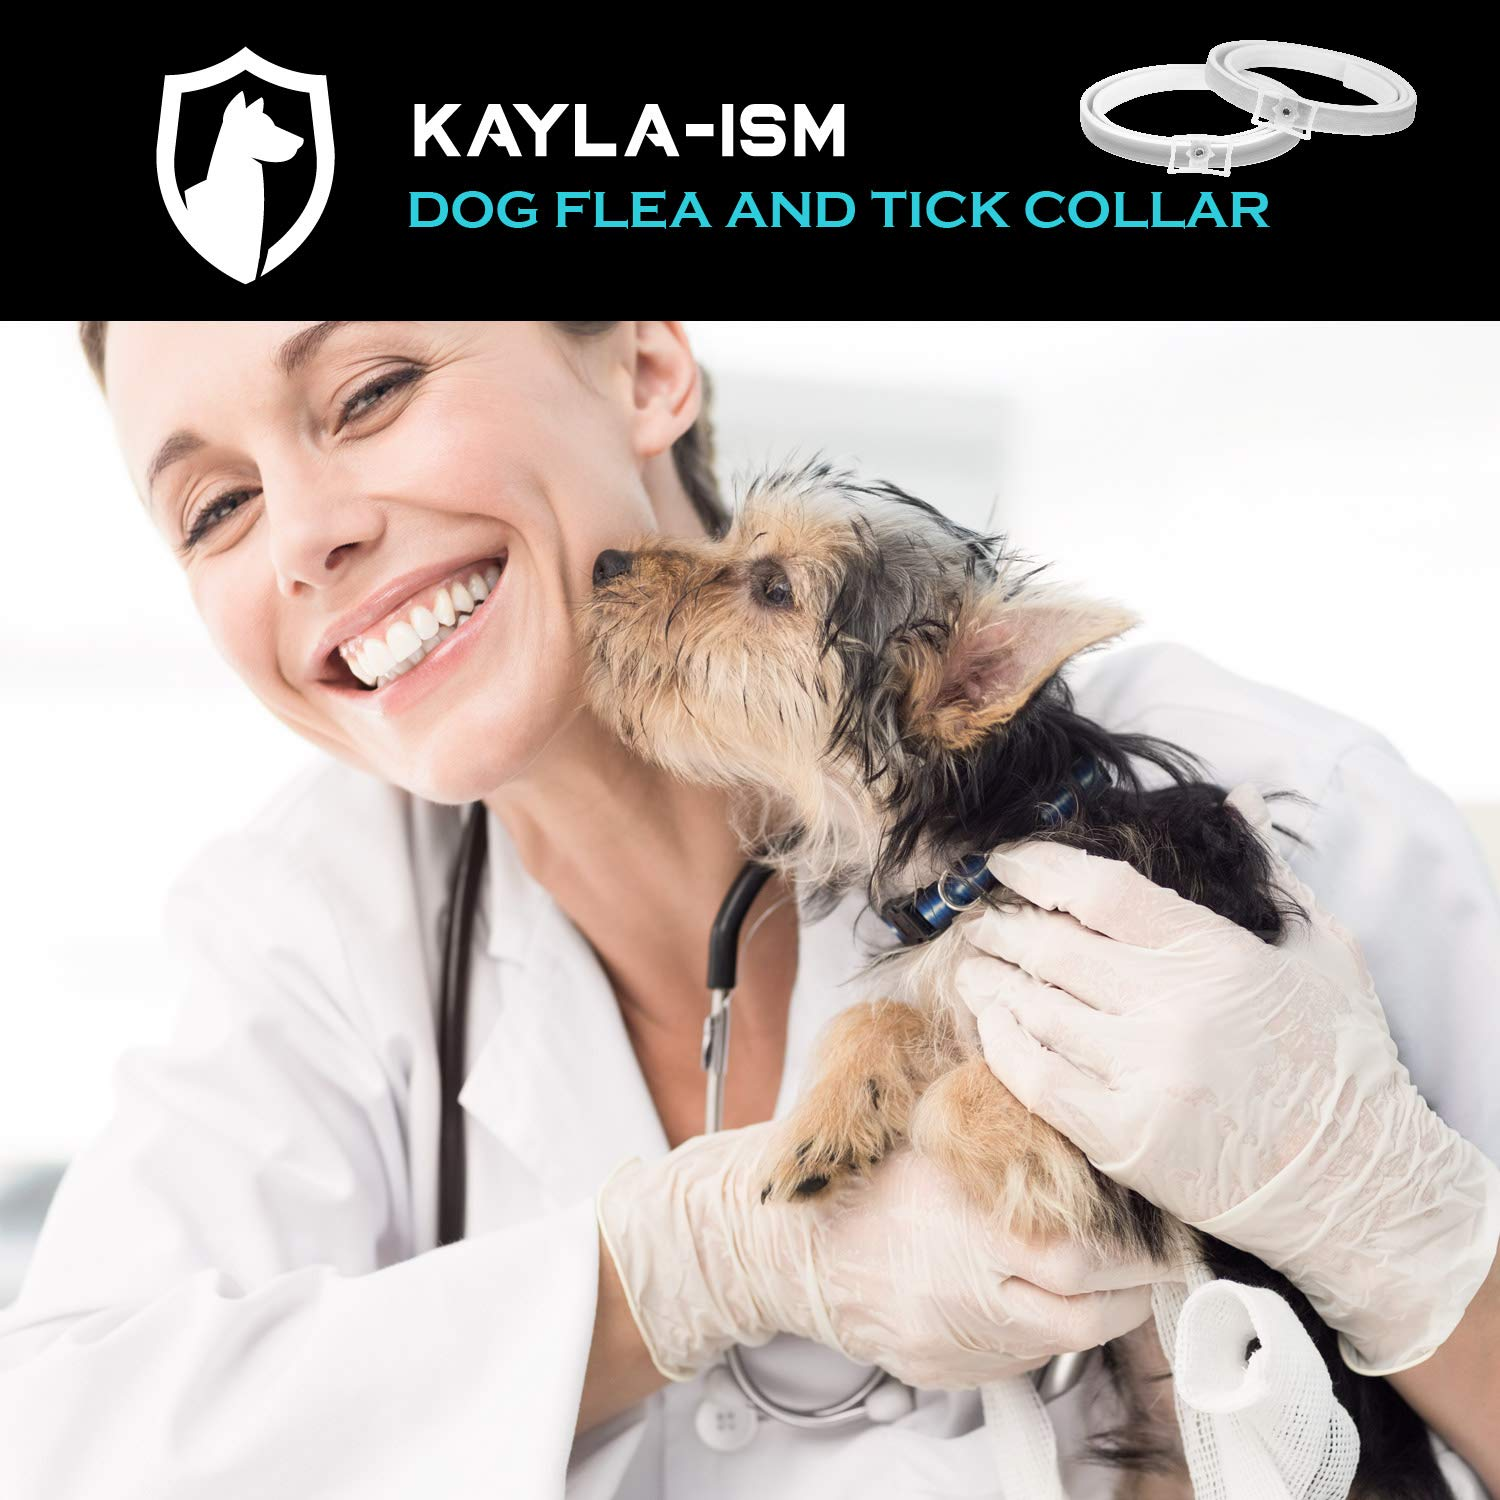 Kayla-ism Dog Flea and Tick Collar, Natural and Essential Oils, Waterproof, One Size Fits All, 8 Months Full Protection, Healthy and Harmless by Kayla-ism (Image #5)